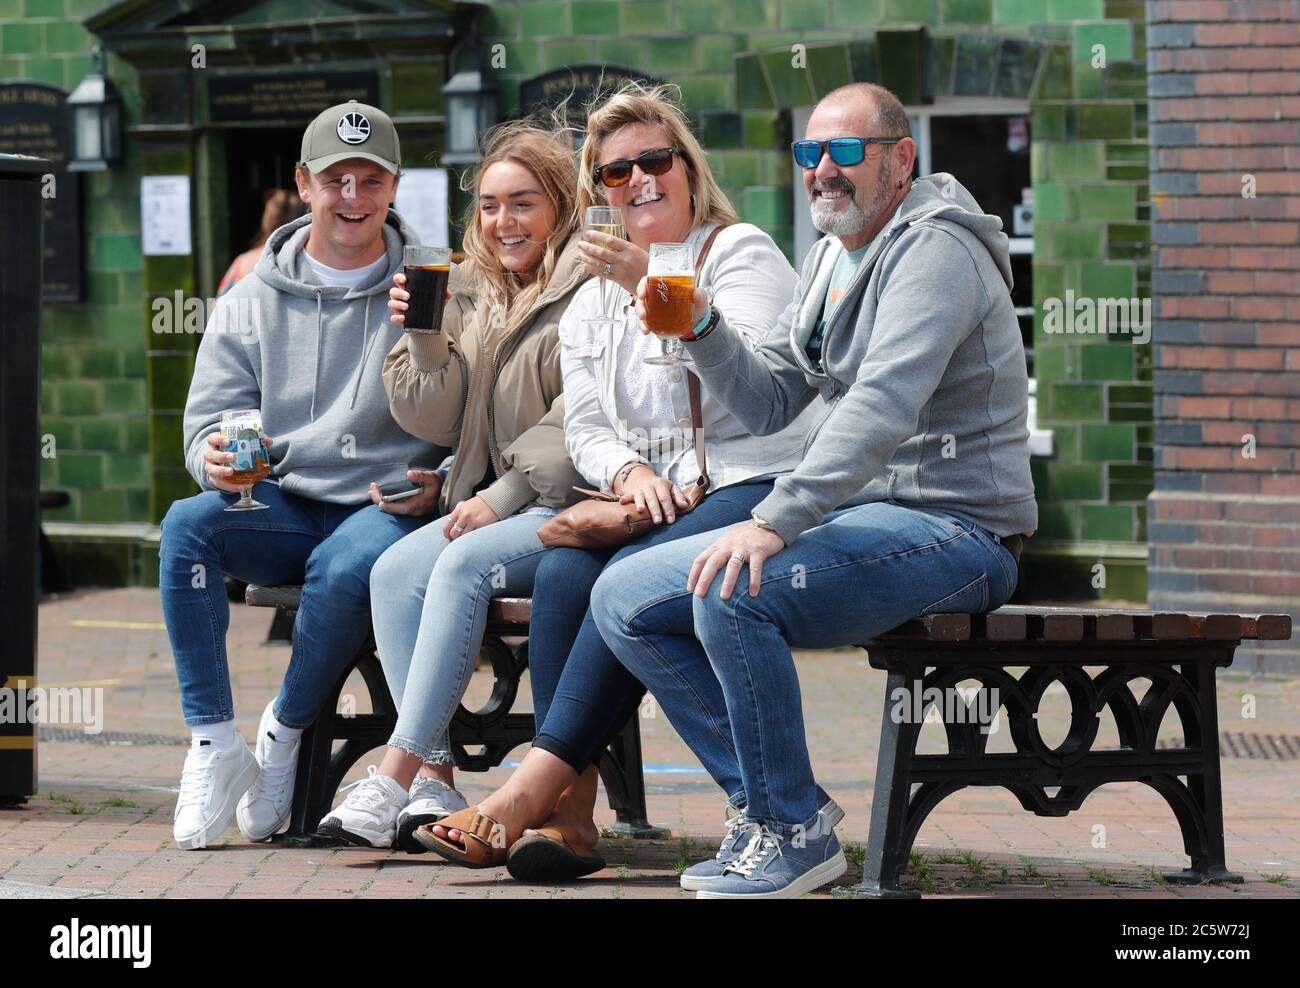 Poole, UK. 5th July 2020. The Critchell family enjoy their first pint out  at the Poole Arms on a bustling Poole Quay  as cafes and pubs reopened this weekend . Credit: Richard Crease/Alamy Live News Stock Photo